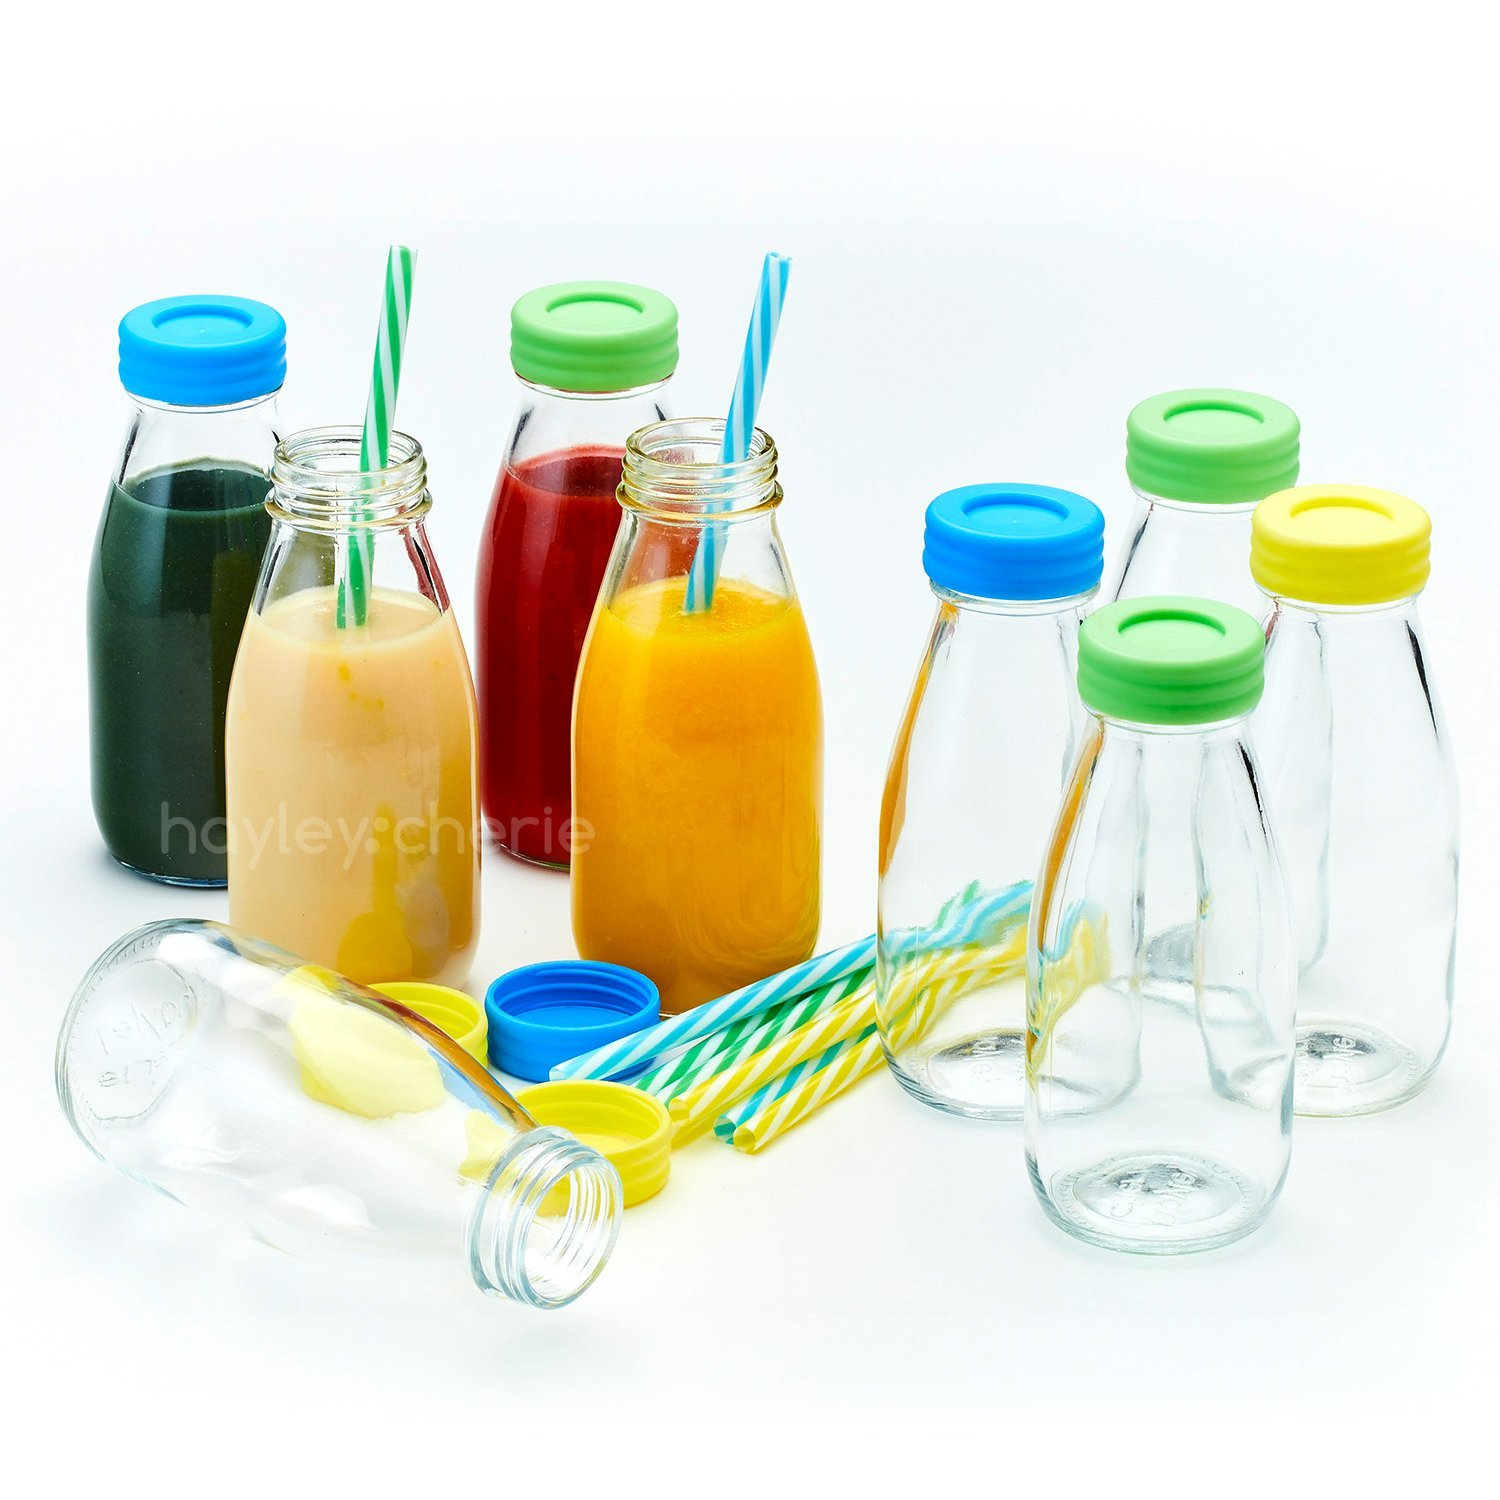 -LAUNCH SALE - Hayley Cherie - 10oz Glass Milk Bottles with Colorful Leak Proof Lids and Reusable Straws - Set of 9